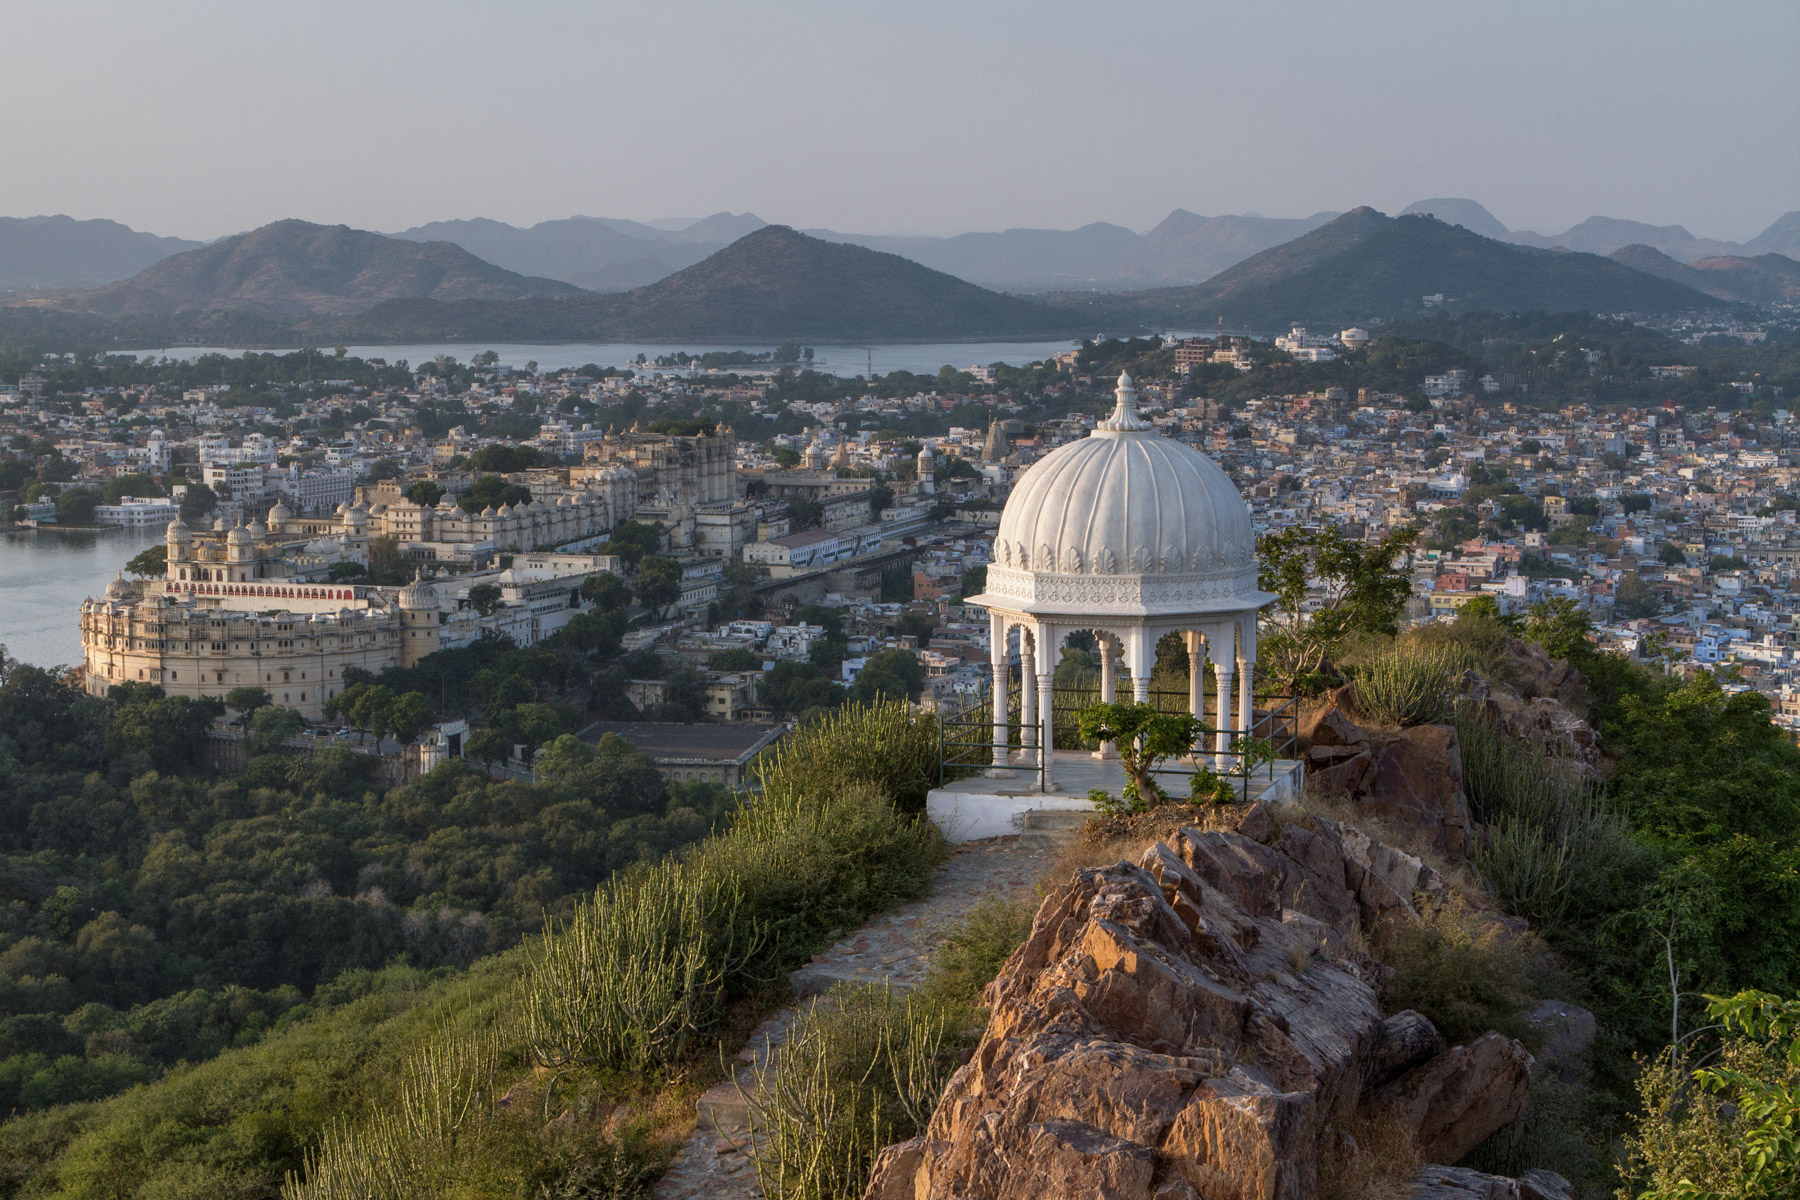 The view of Udaipur from Karni Mata